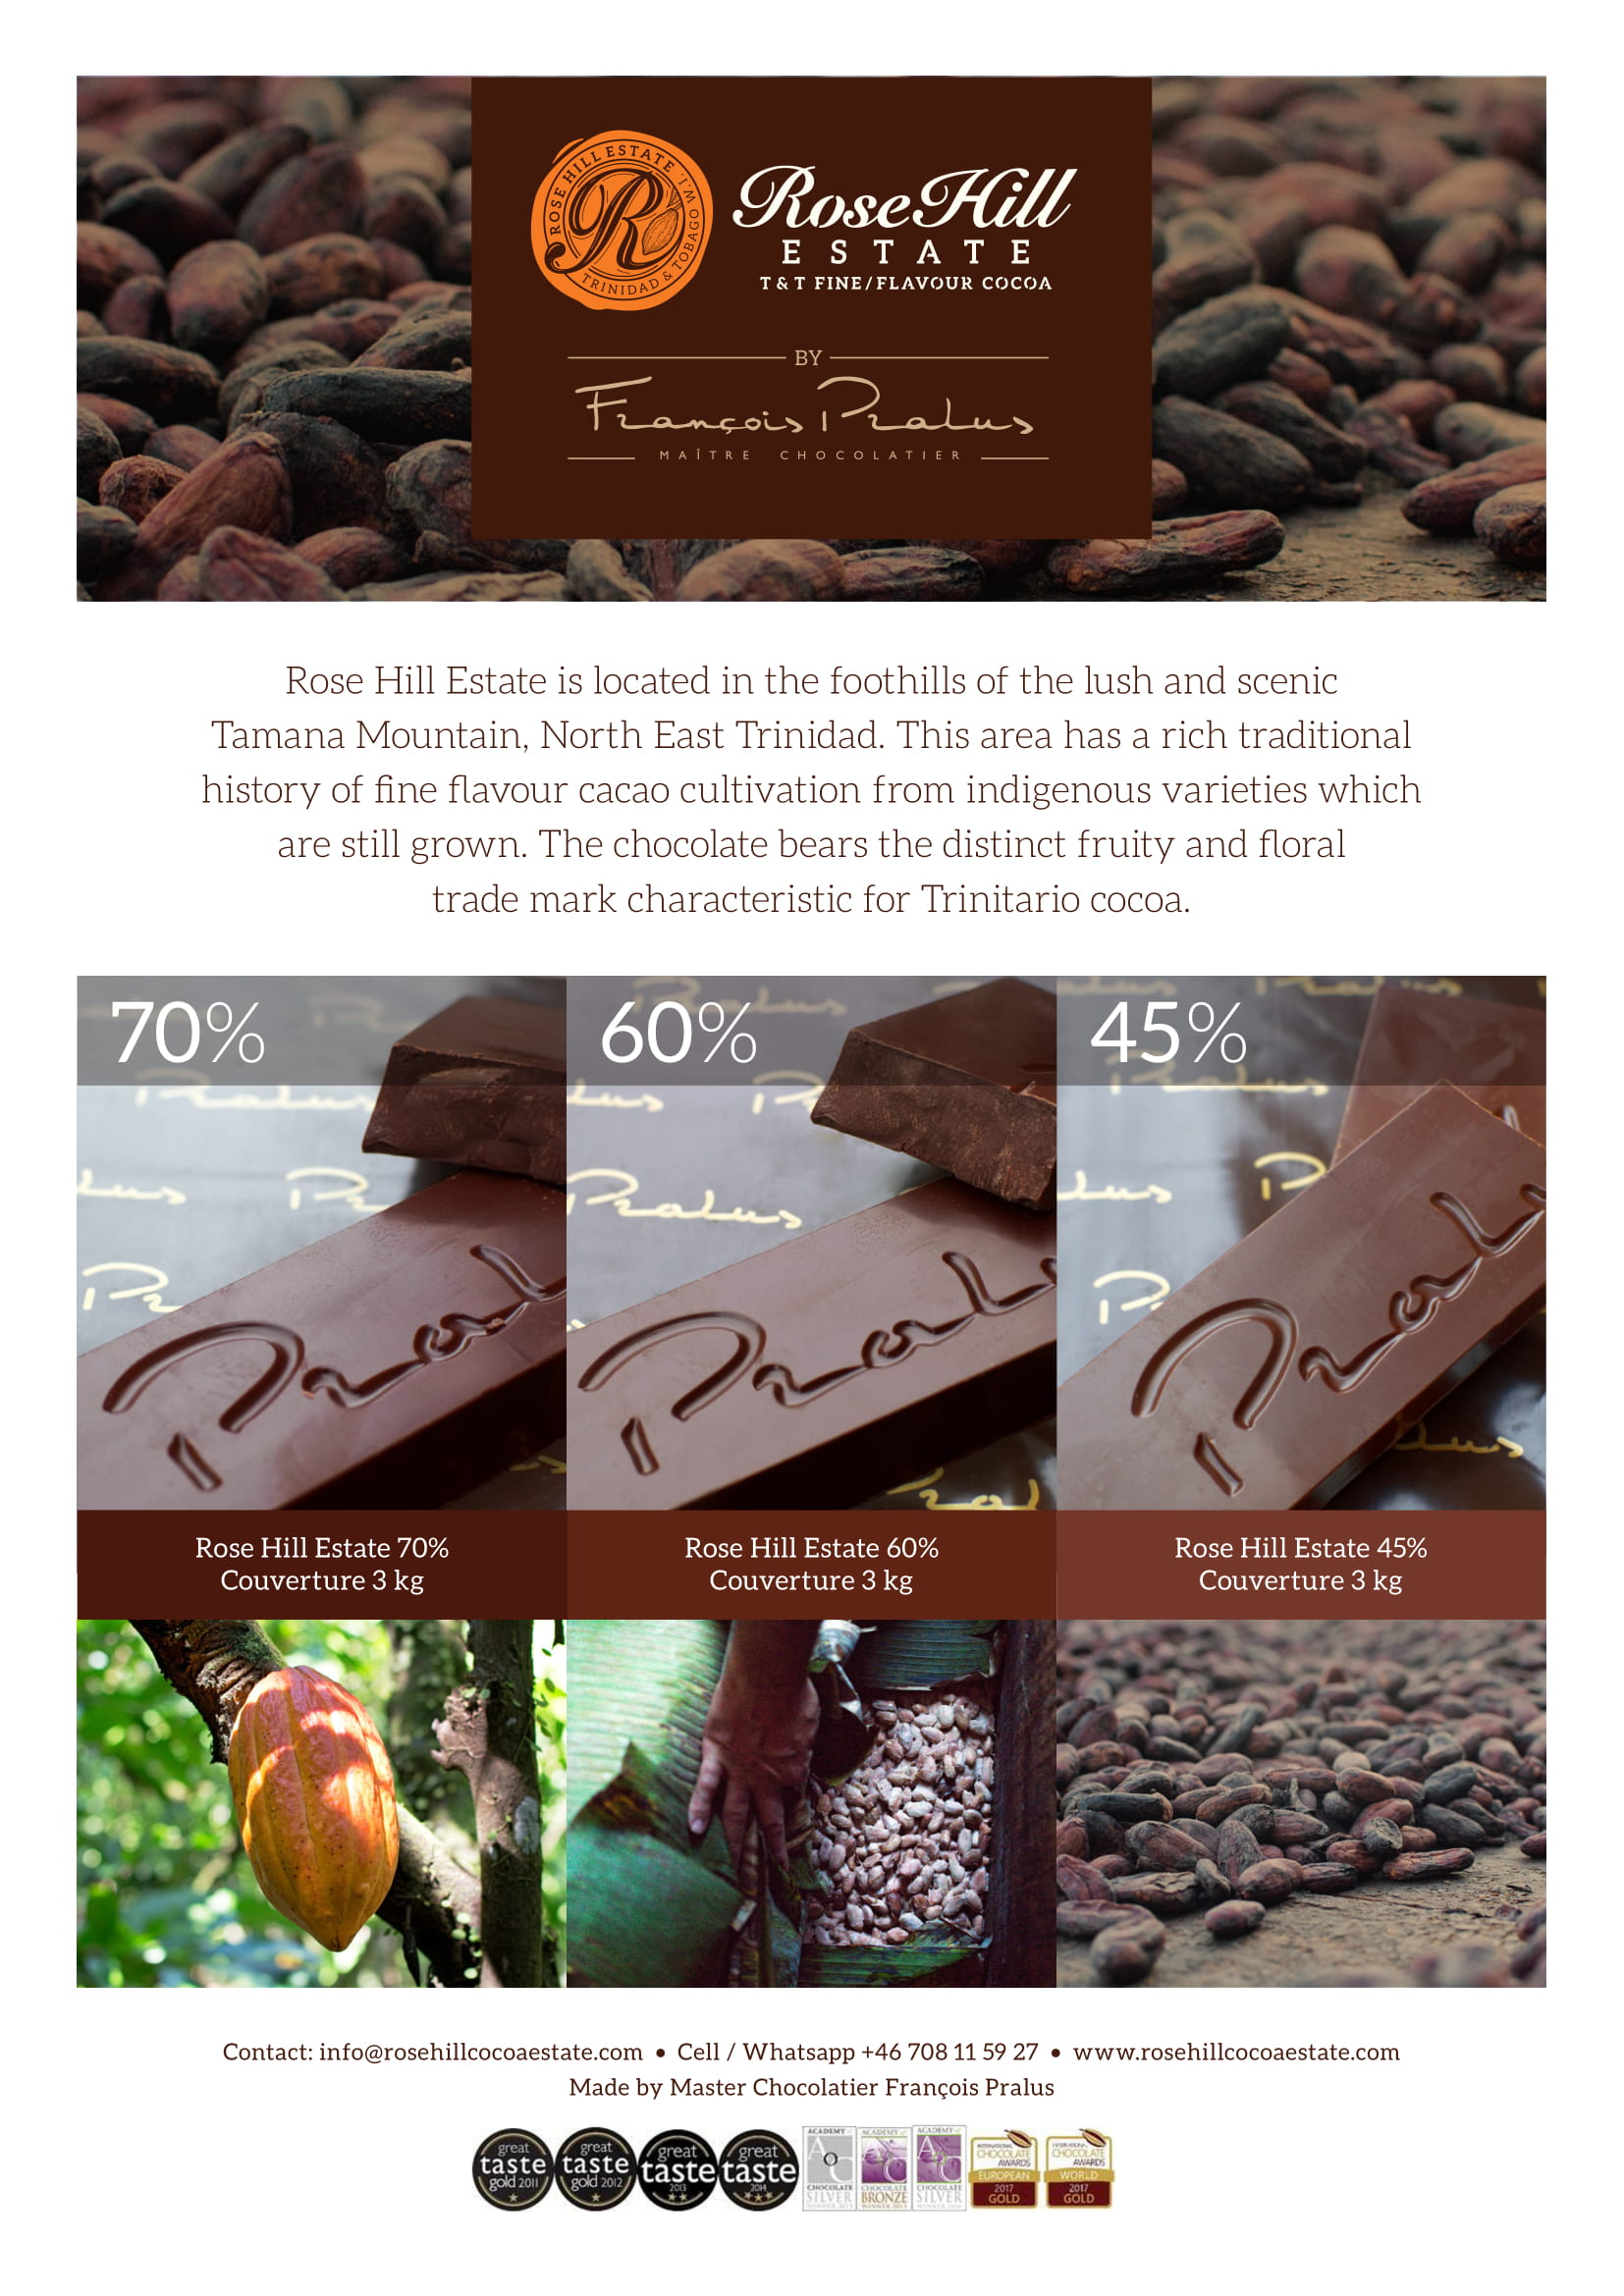 - We offer couverture chocolates for chefs and bakers 45%, 60% and 70% available in 3 kg bars.All our couverture products are made in collaboration with artisan chocolatier Francois Pralus. For inquiries email us: info@rosehillcocoaestate.com